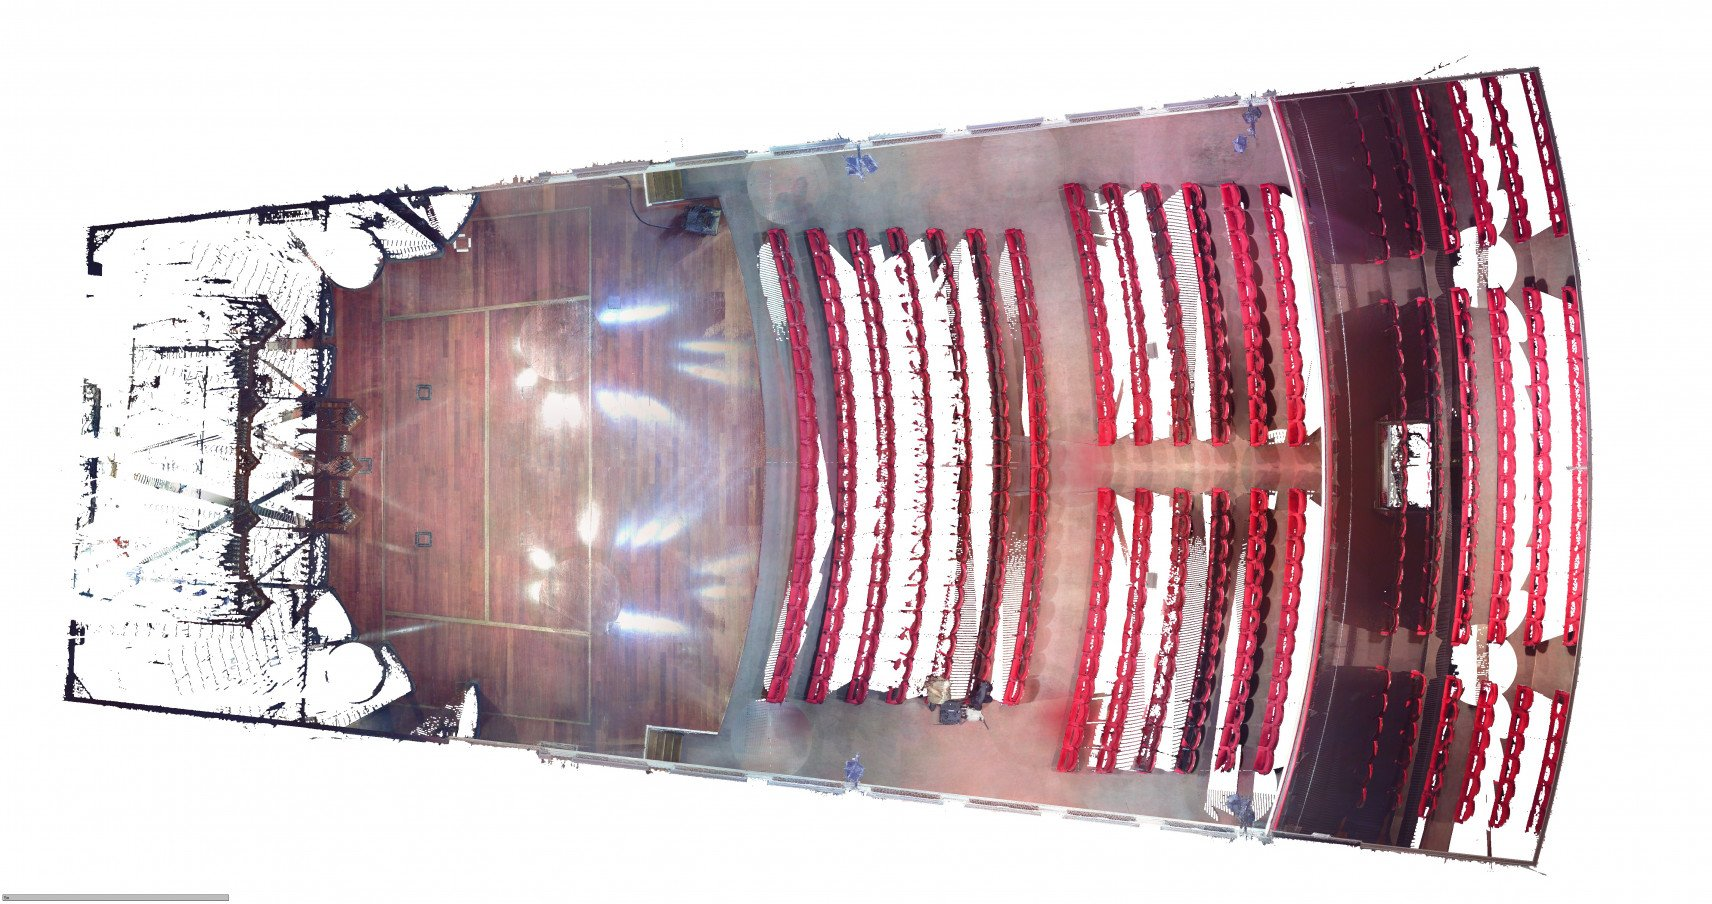 Concert hall MIRY, Ghent | 3D-scan overview